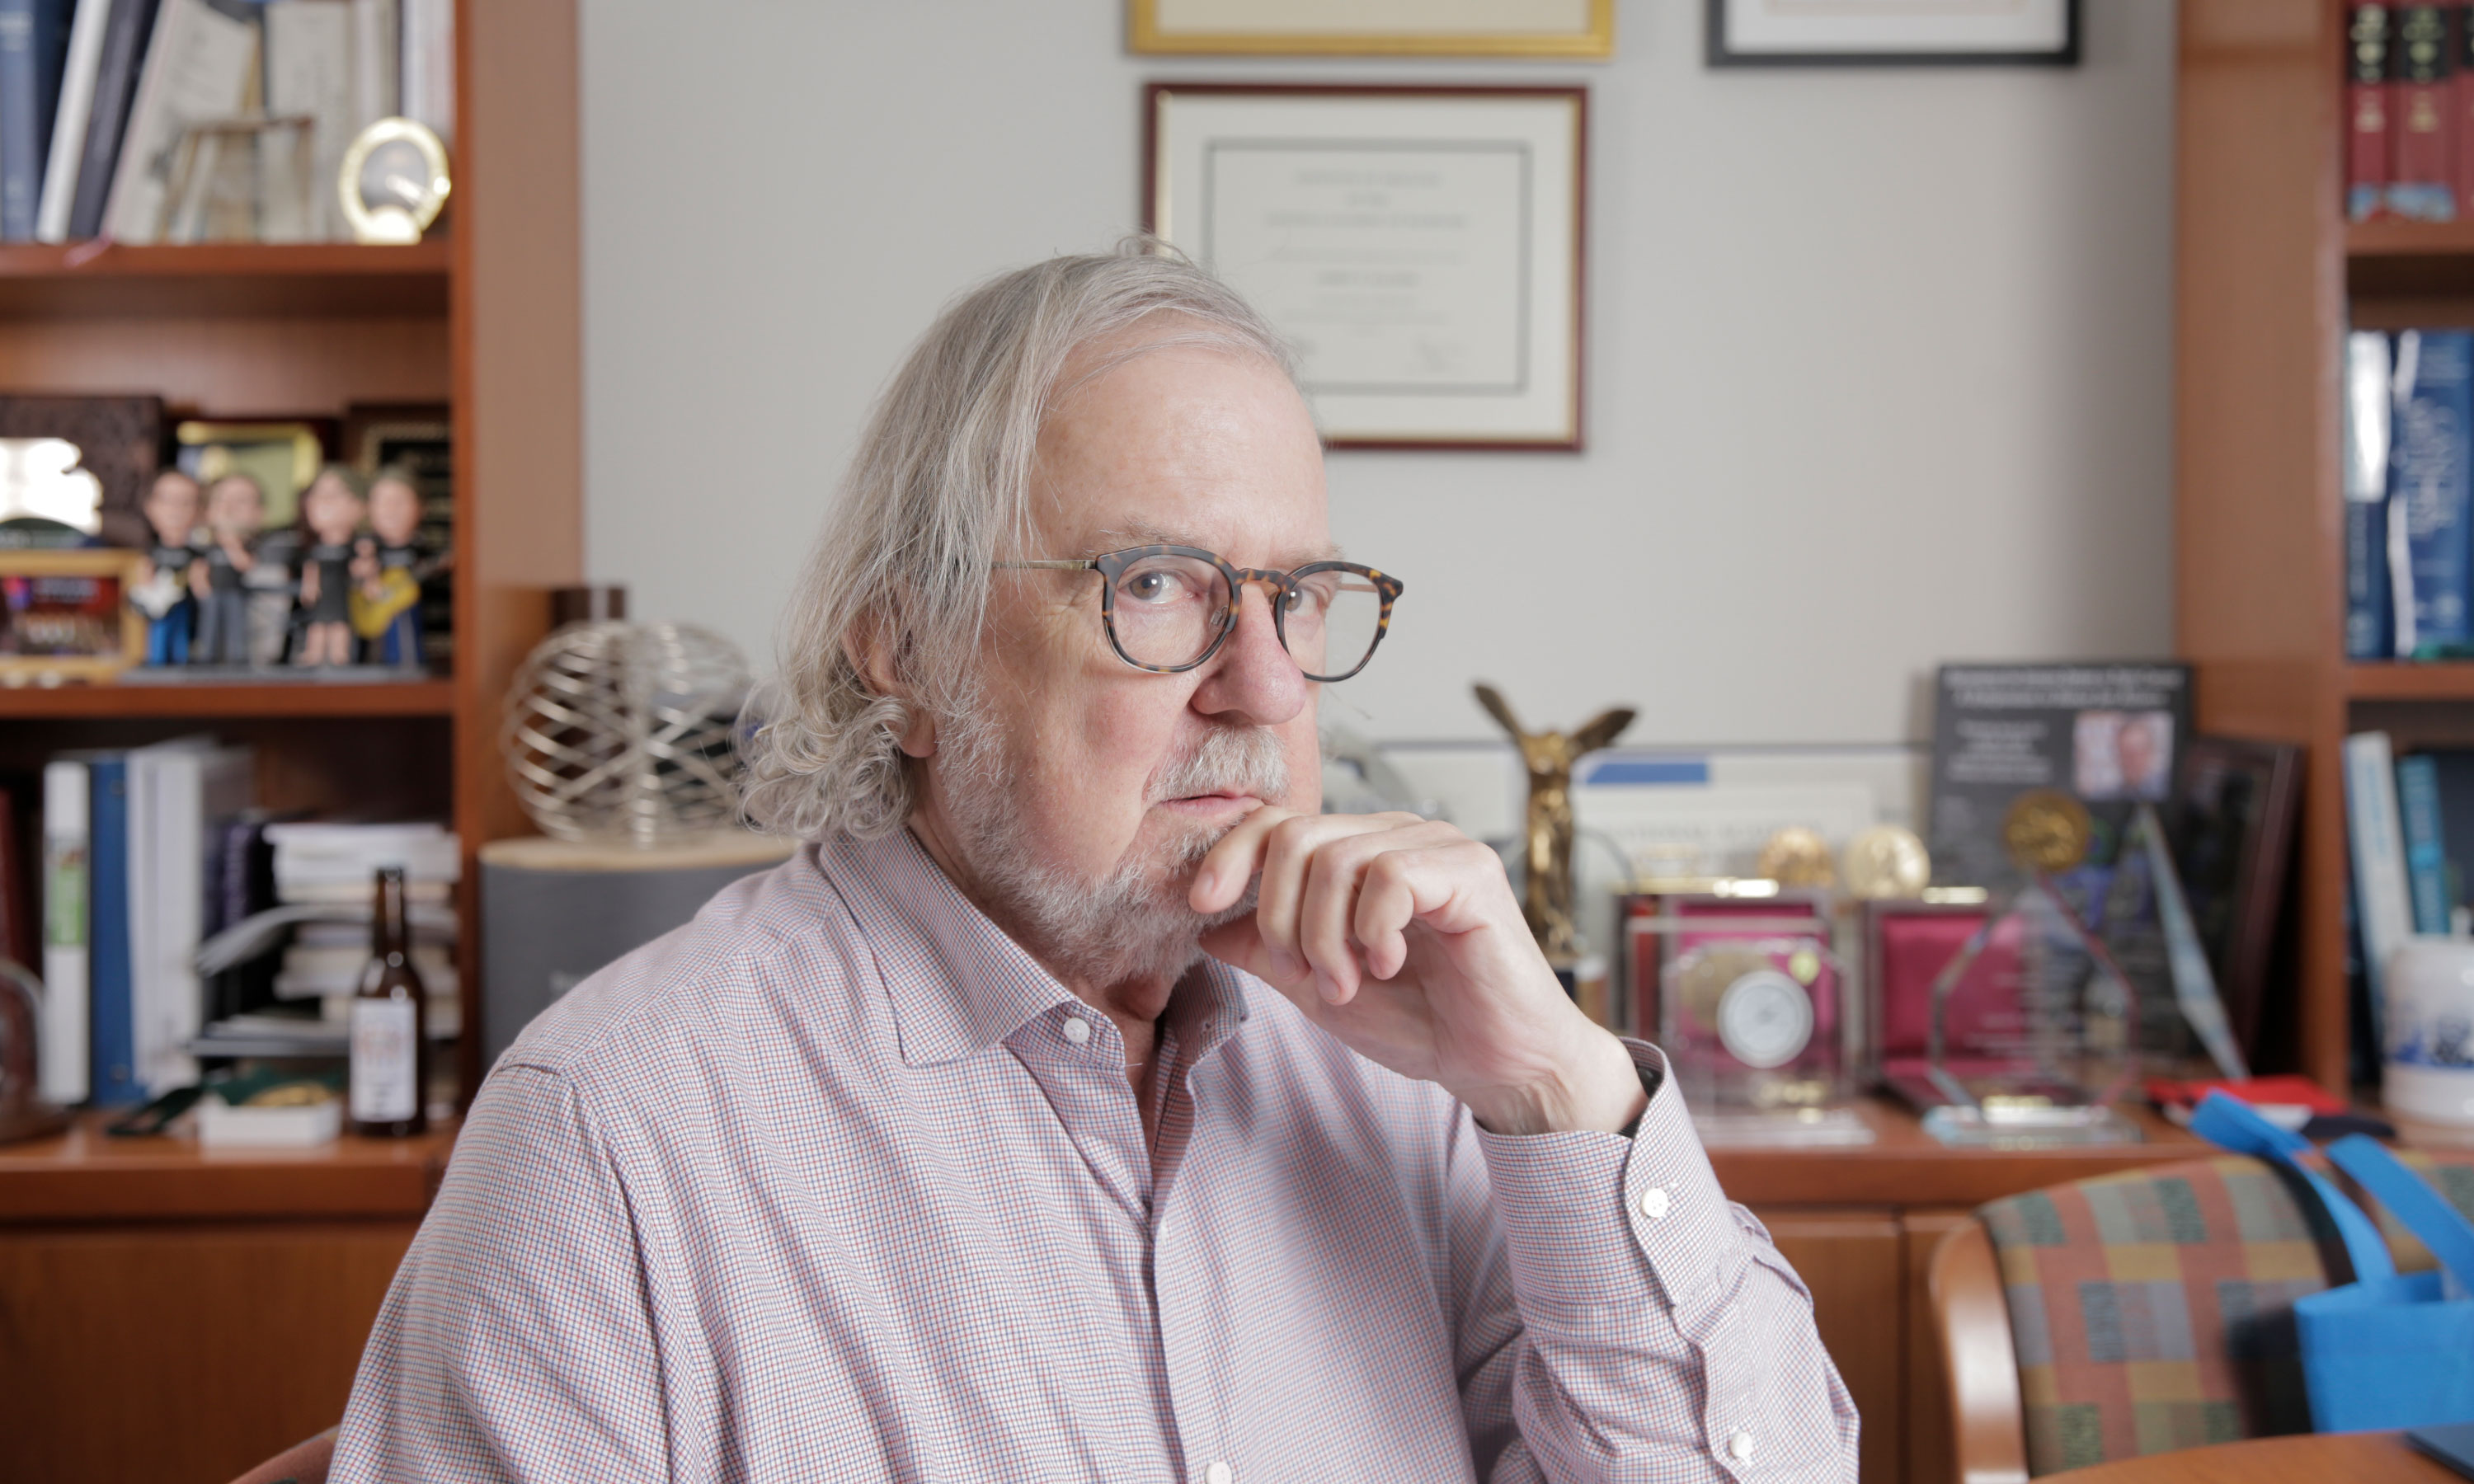 Photo of James P. Allison sitting at his desk at the MD Anderson Cancer Center.